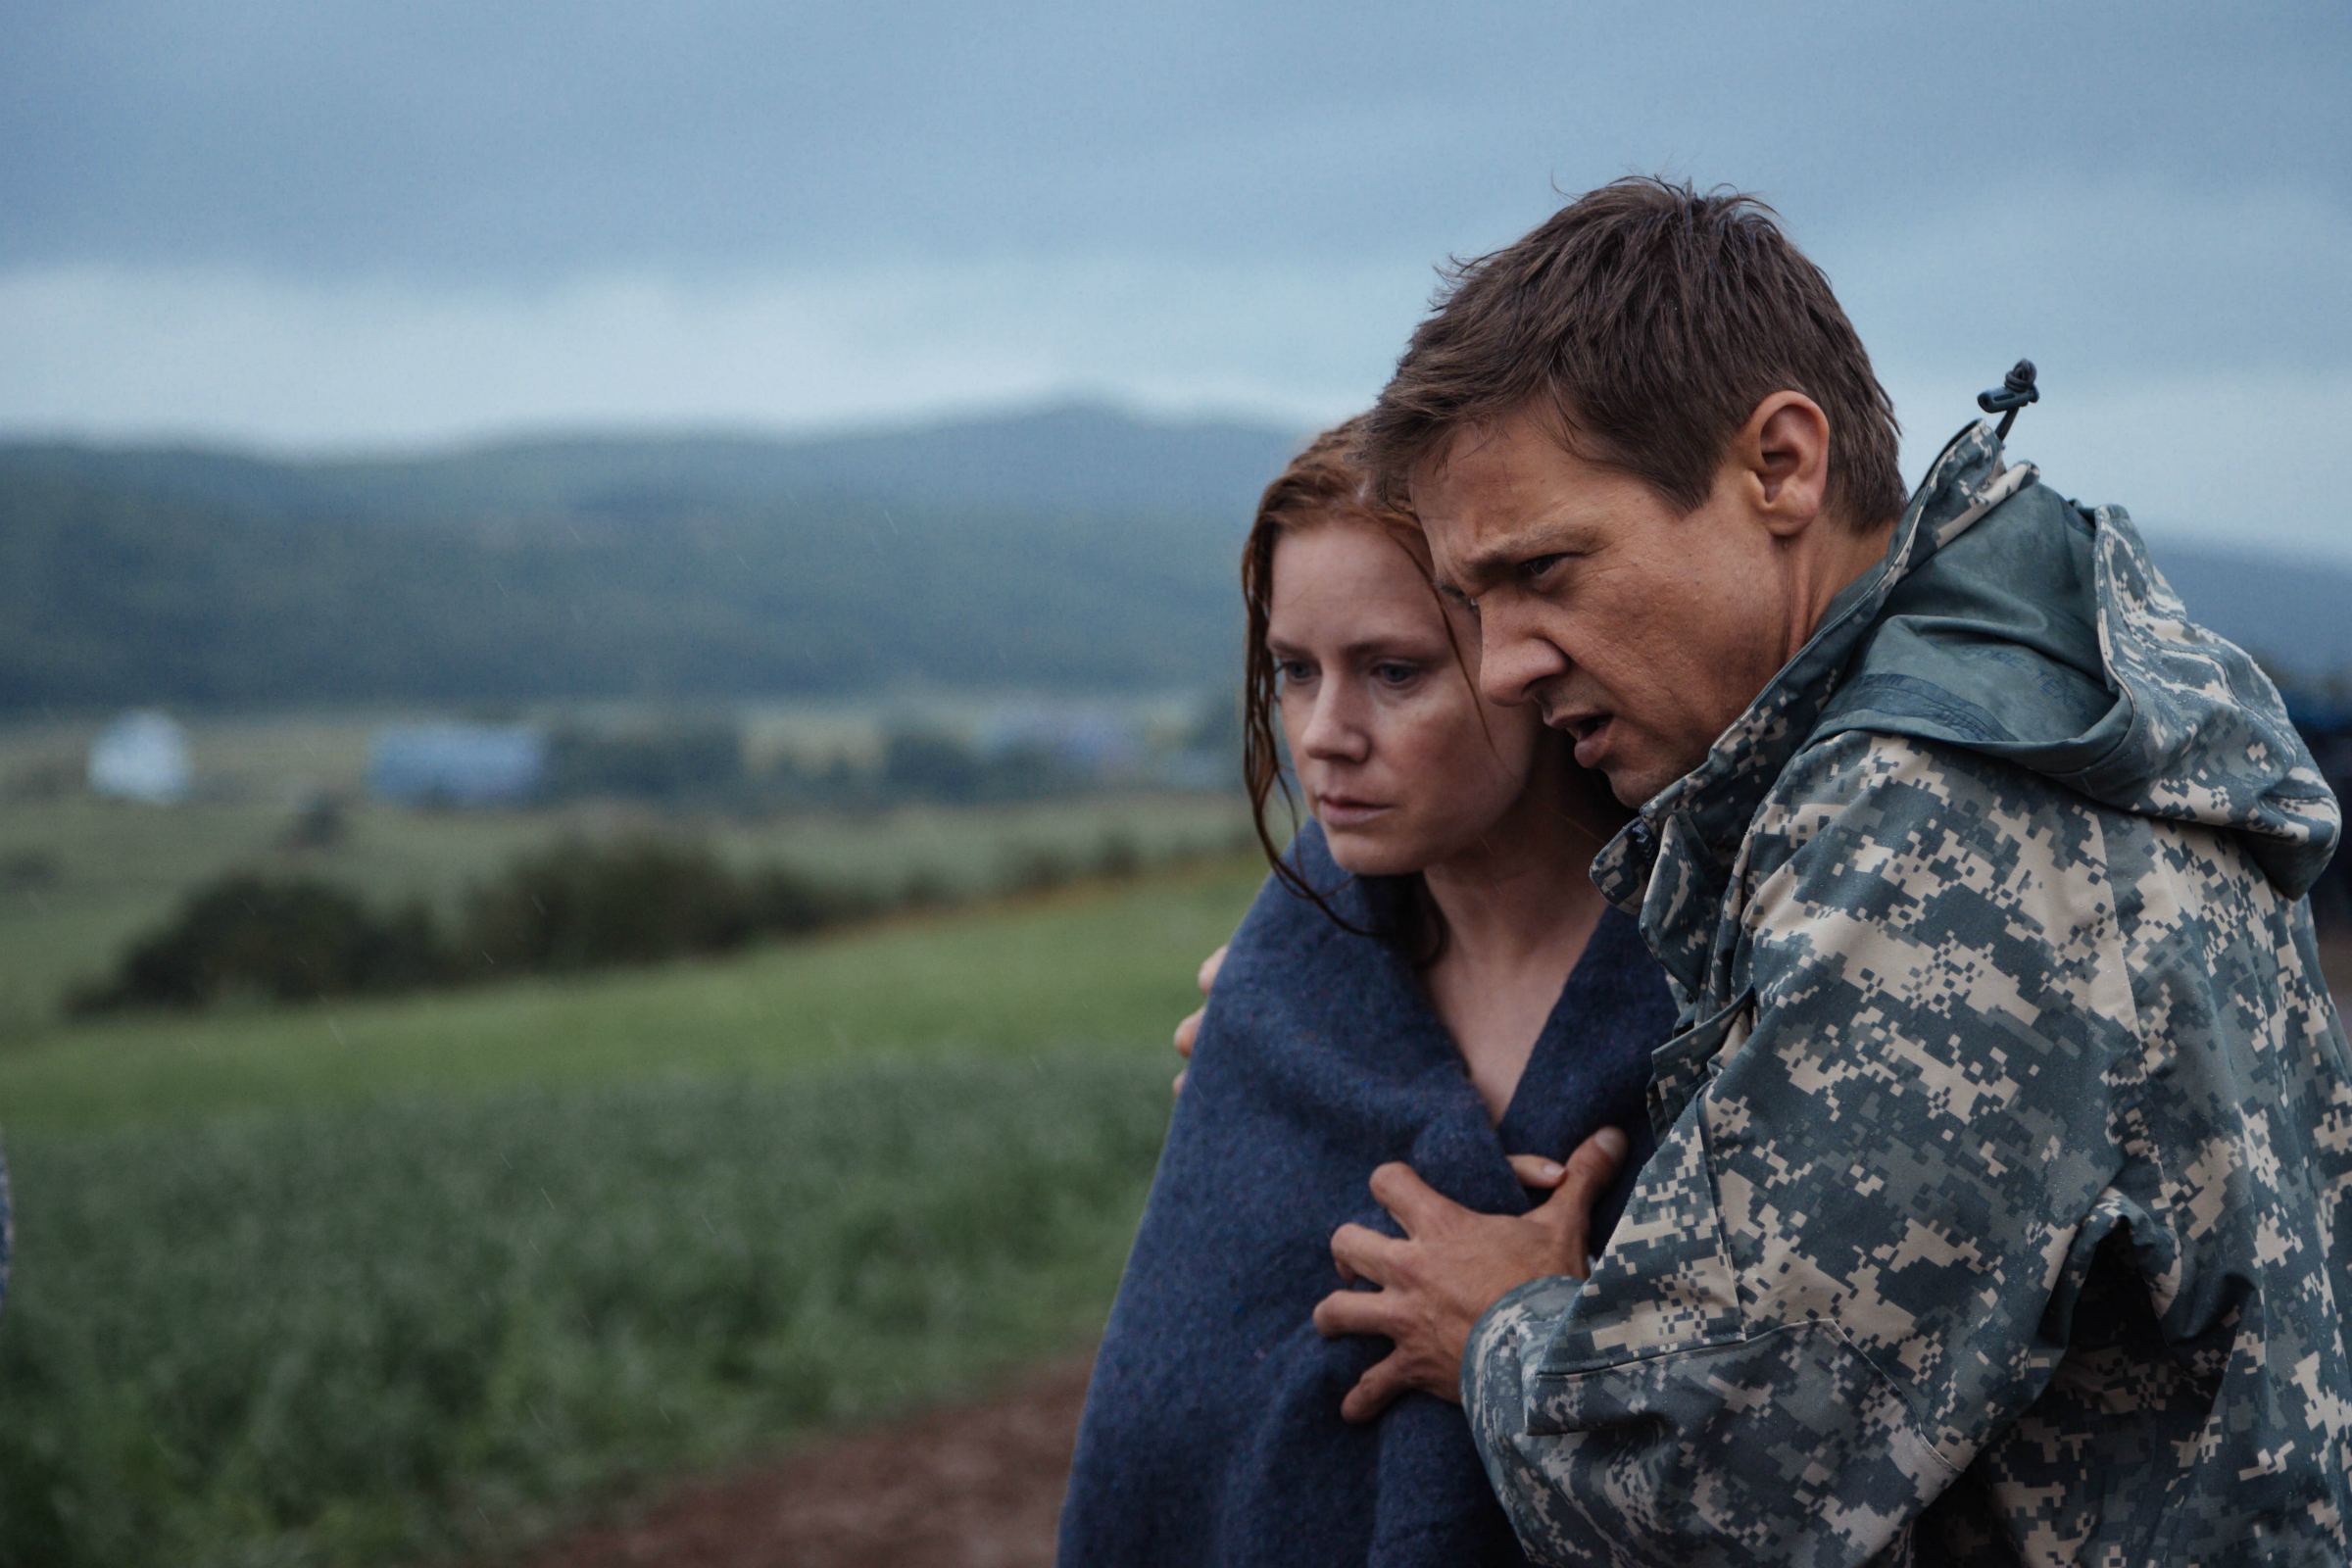 Arrival's screenwriter tells us how it took more than 100 drafts to think like an alien